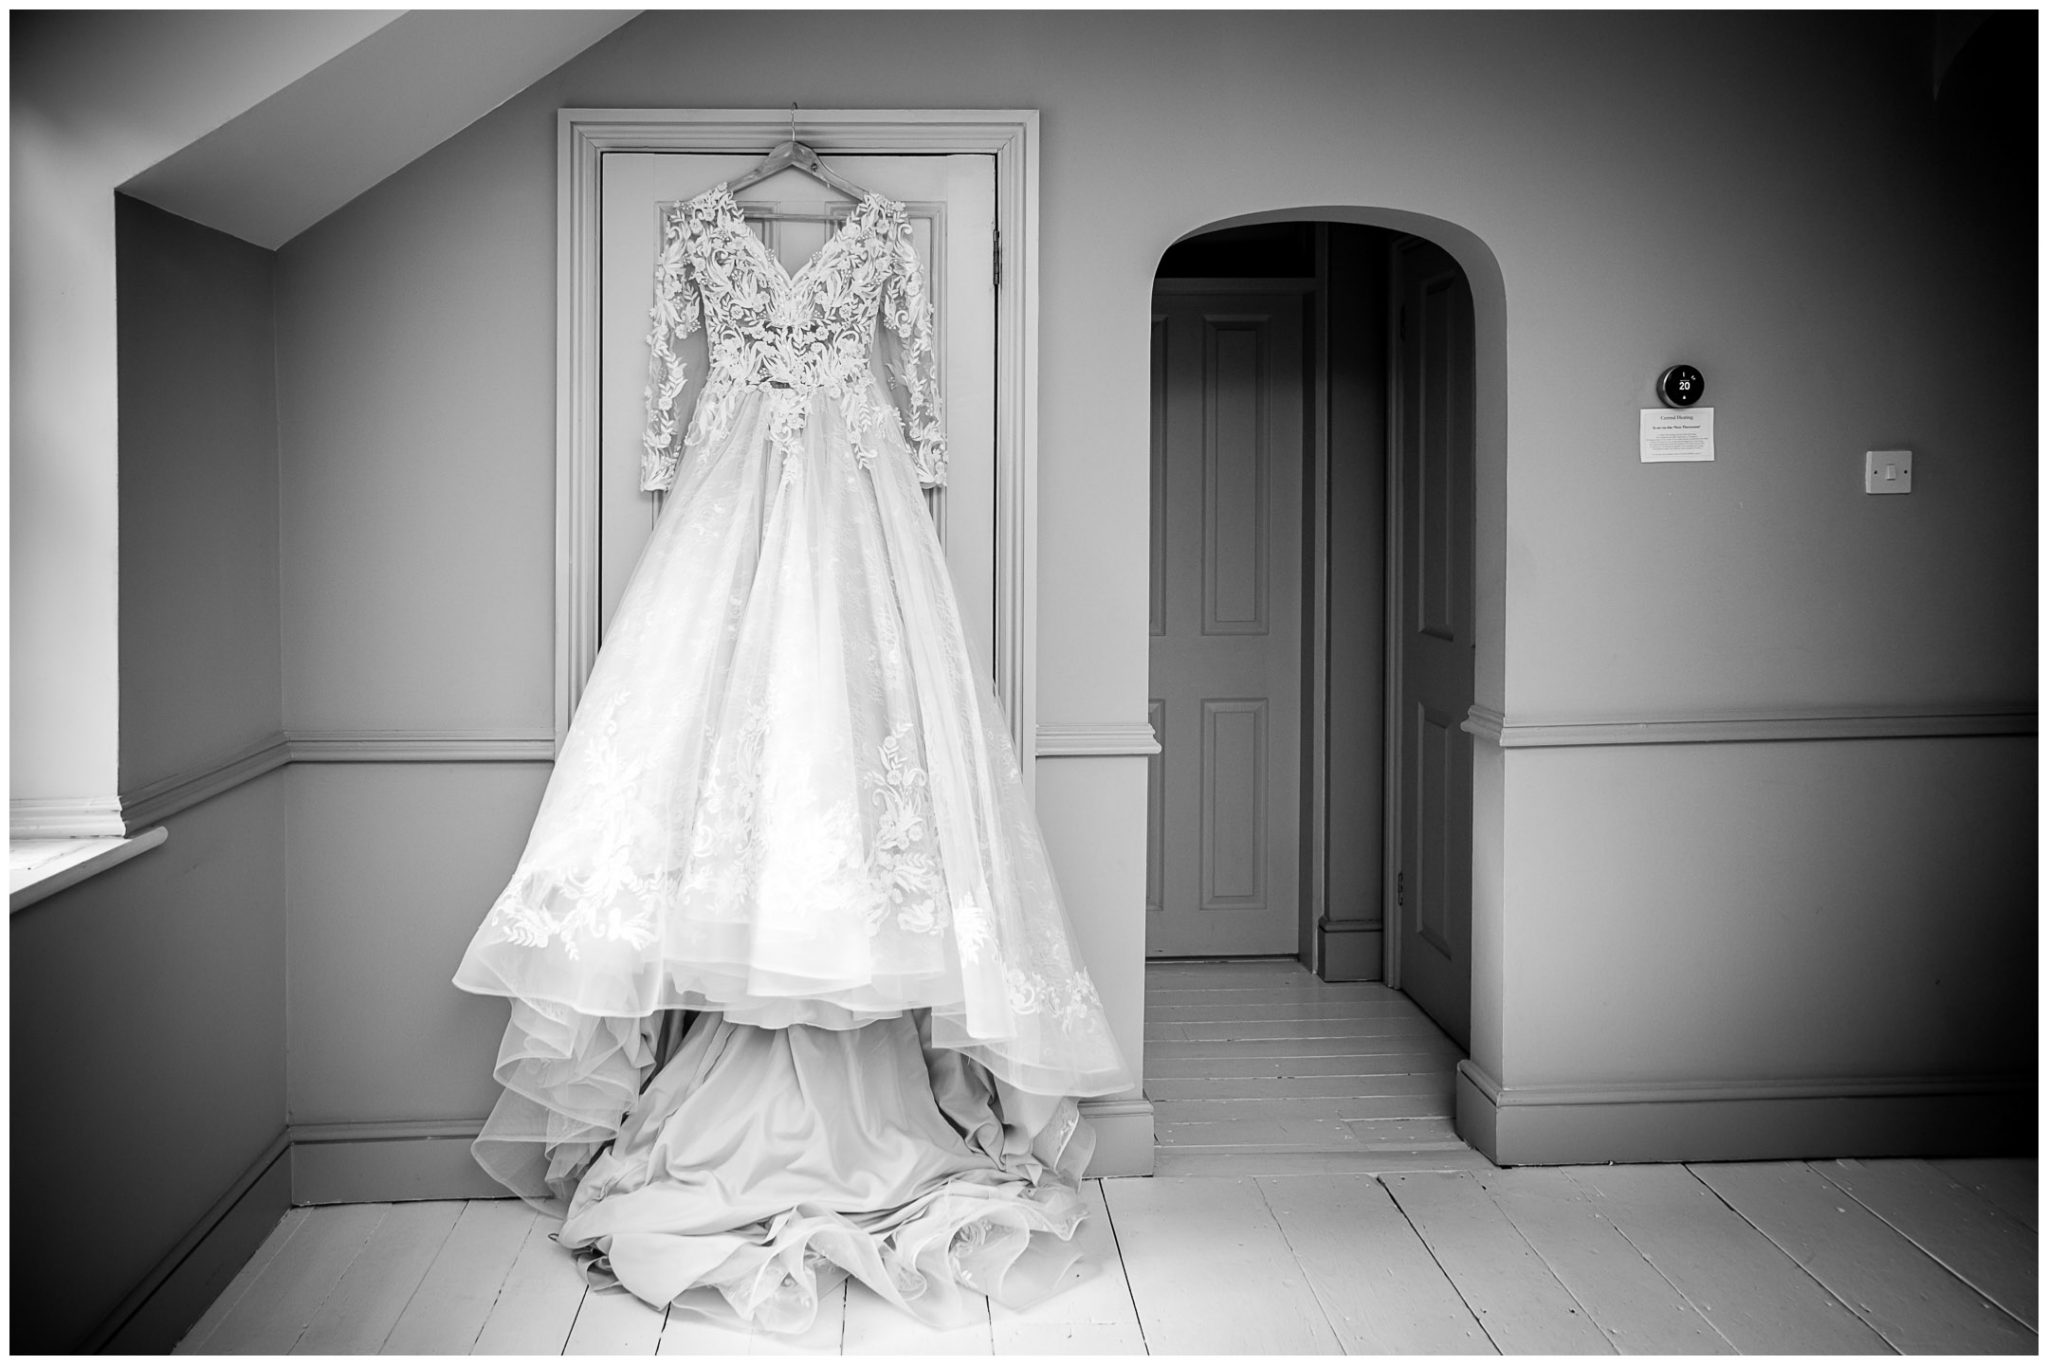 The wedding dress hangs on a door frame in the Gate House at Deans Court